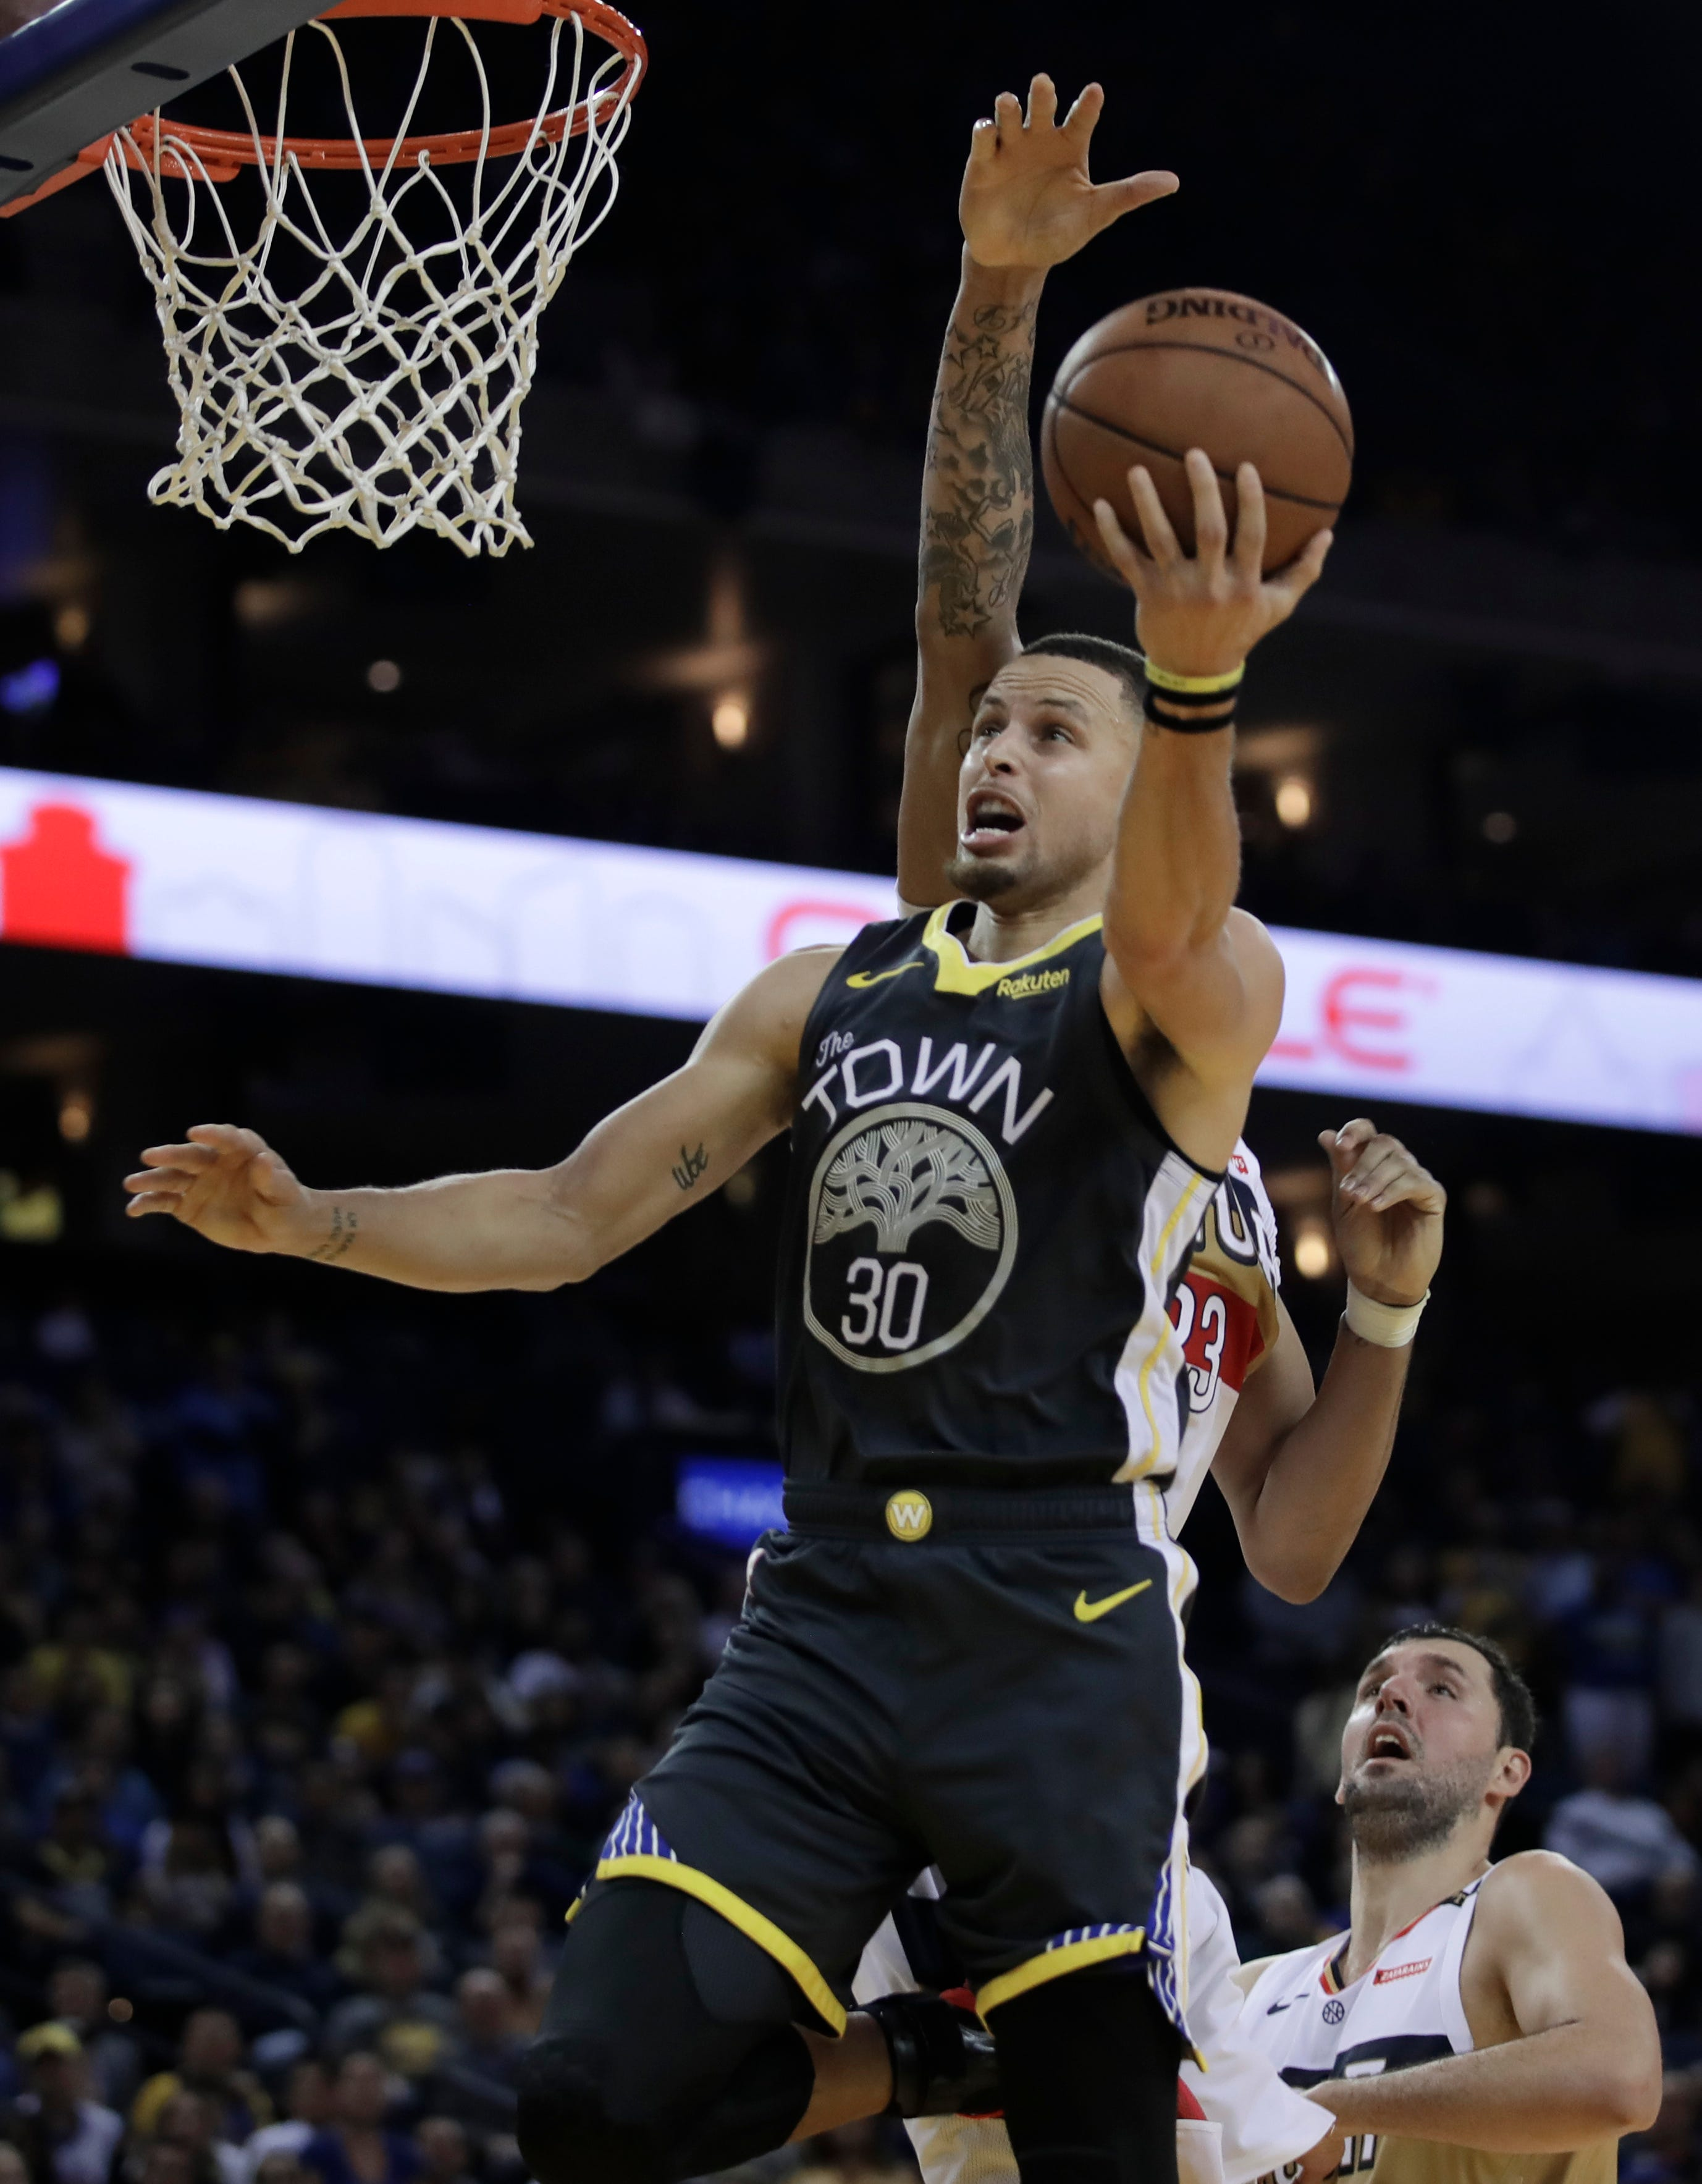 cc4841af396 (AP) — Stephen Curry stepped back time and again and released the ball from  way back. Most of the time with at least one defender in his face